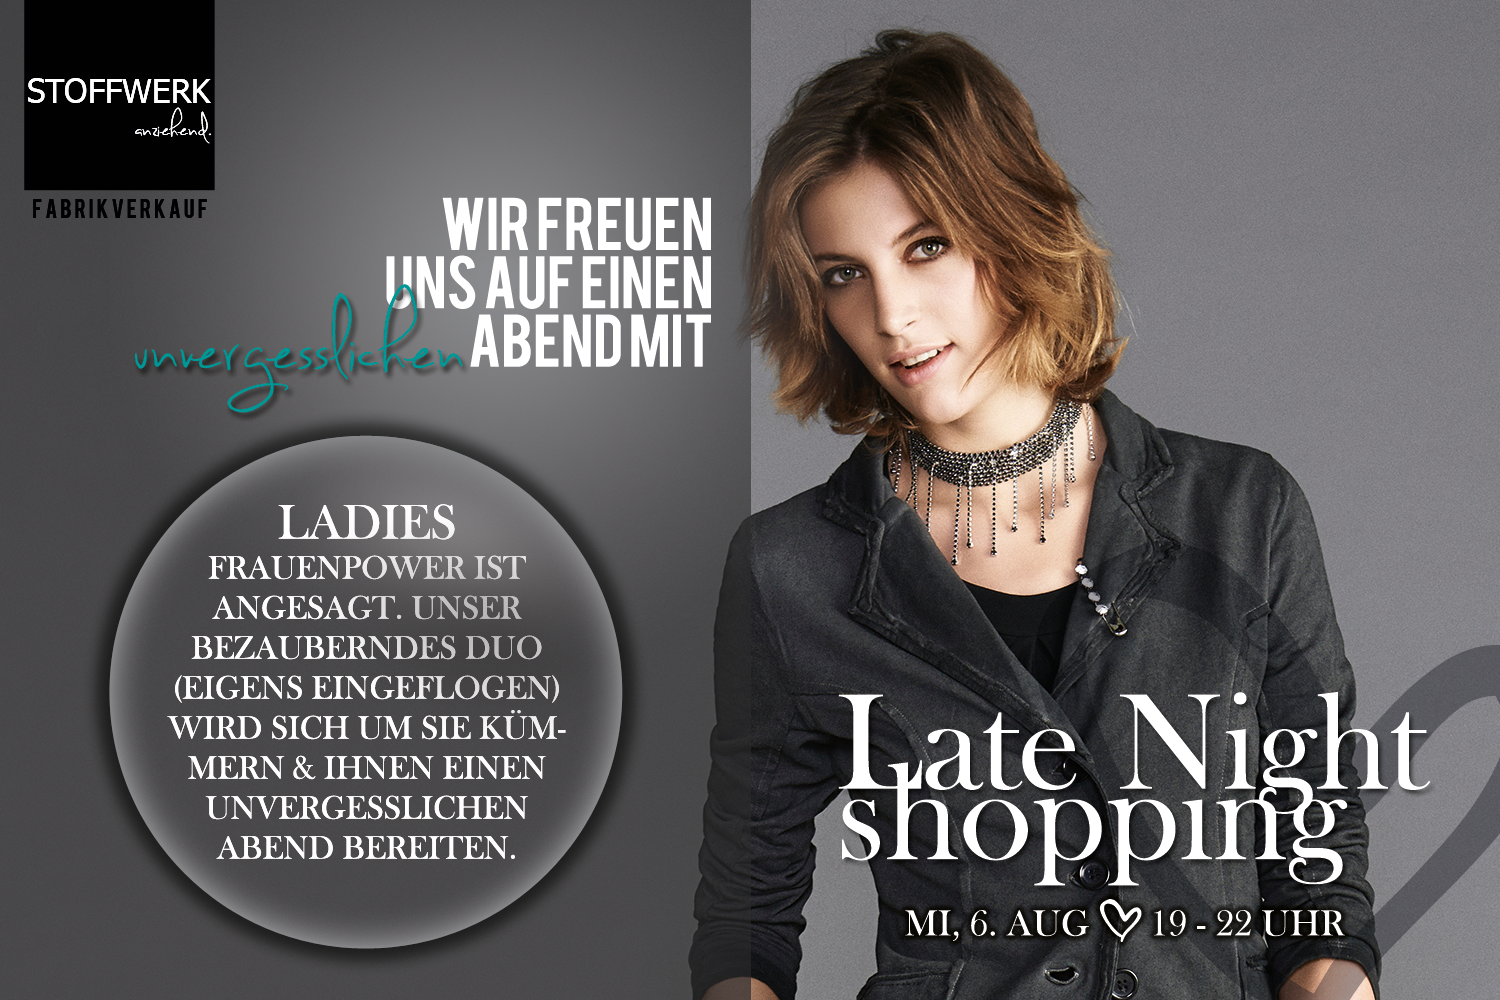 Late Night Shopping // Mi, 6. Aug // 19 – 22 Uhr